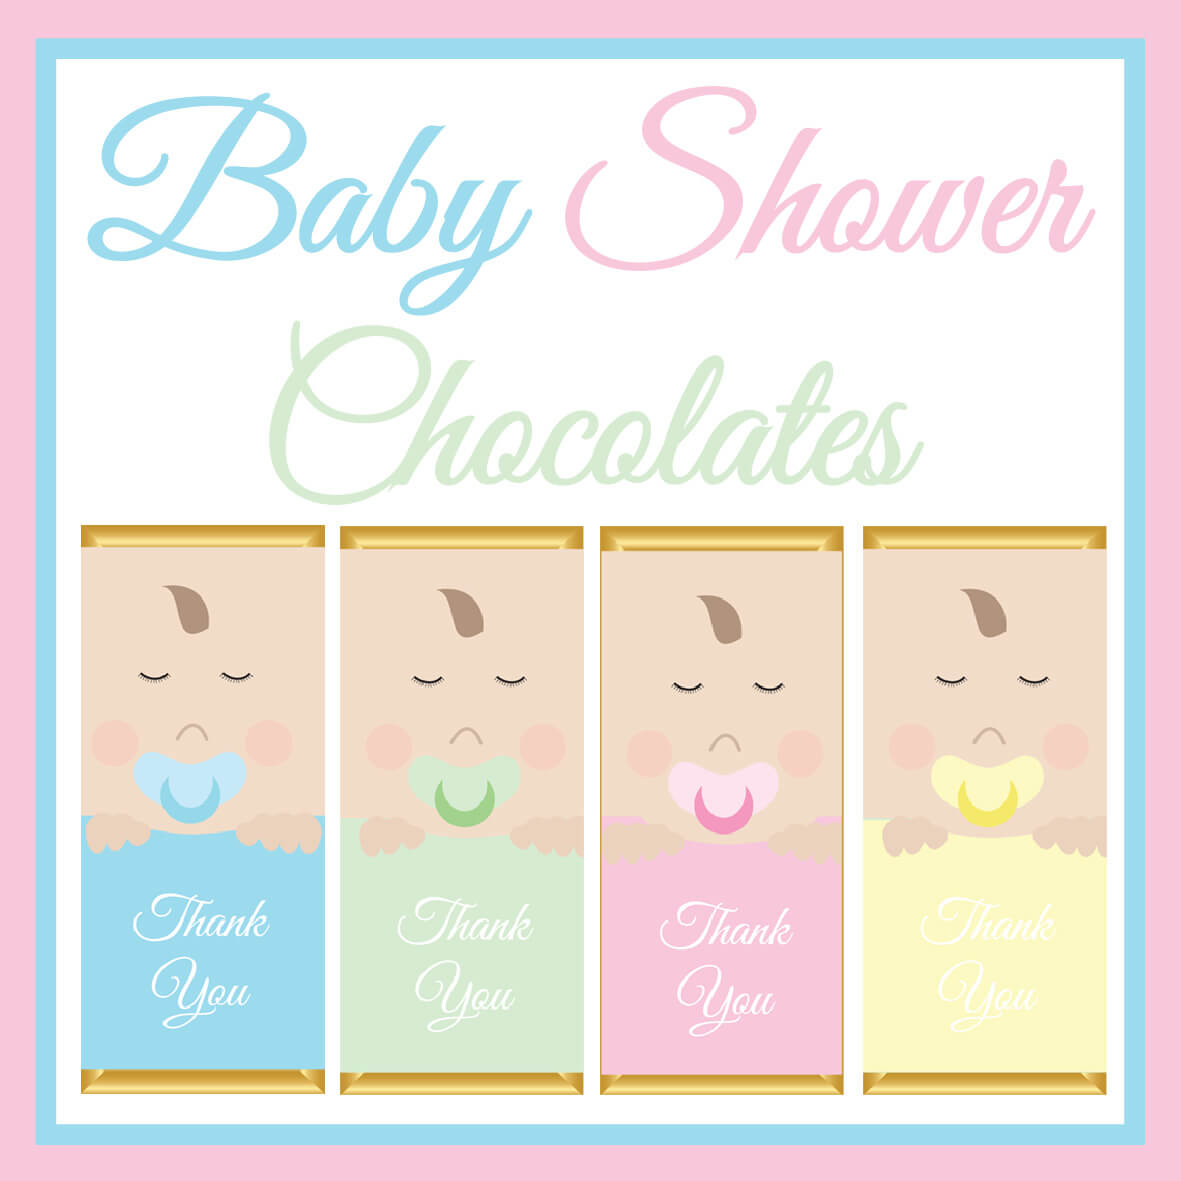 Baby Shower Chocolate Bars